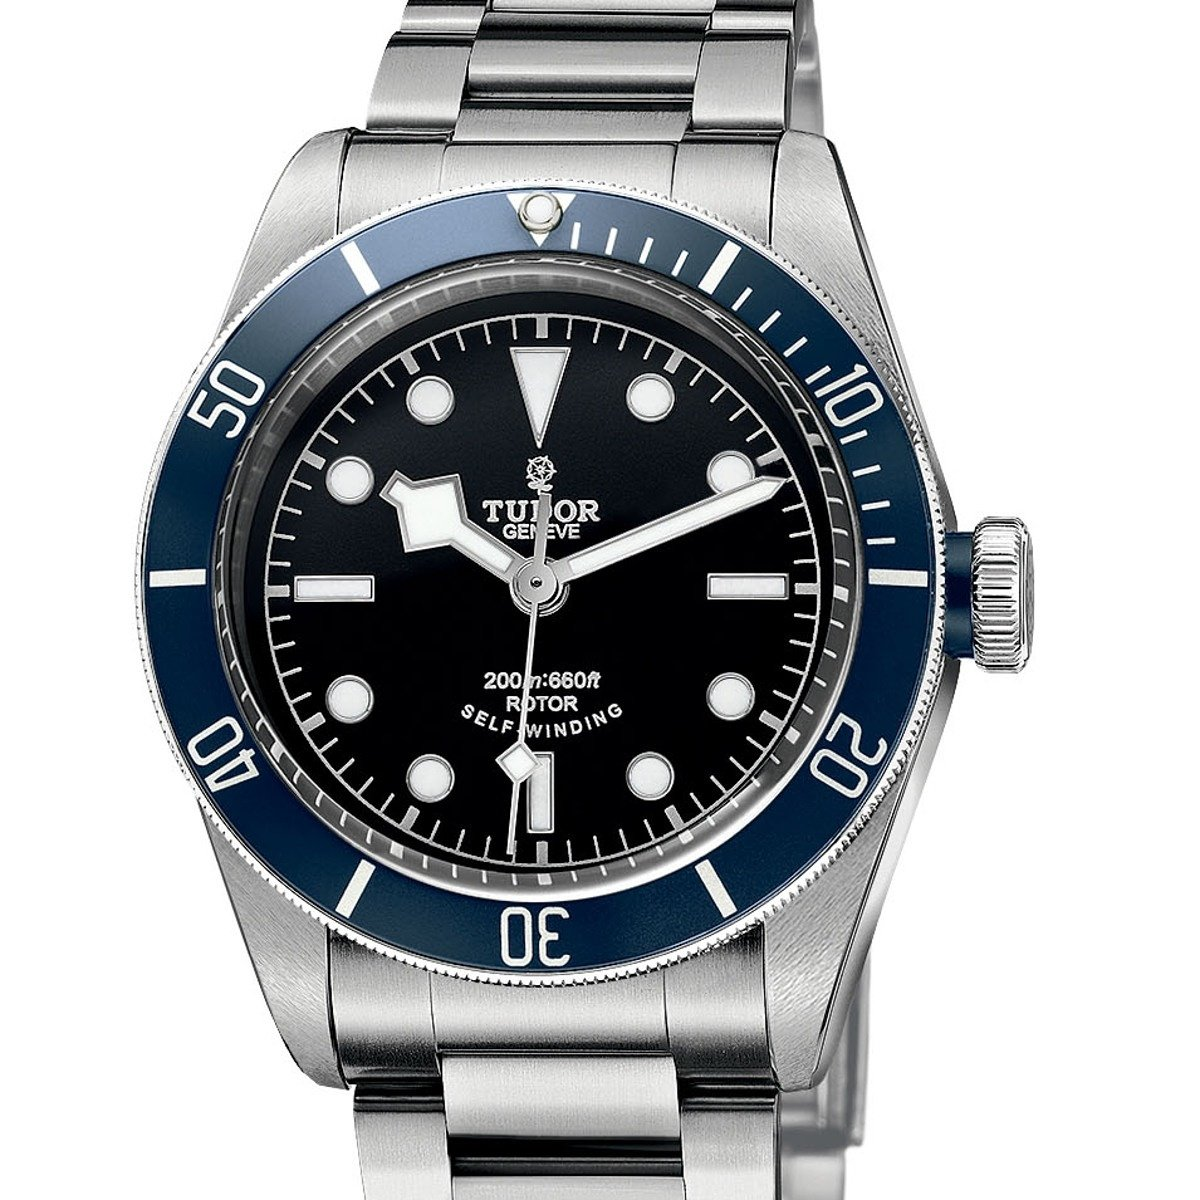 #DidYouKnow the #TUDOR #BlackBayBlue comes with a bonus fabric strap when you purchase it on bracelet or leather? #OfficialTUDORJeweler https://t.co/FibKmnqAPj